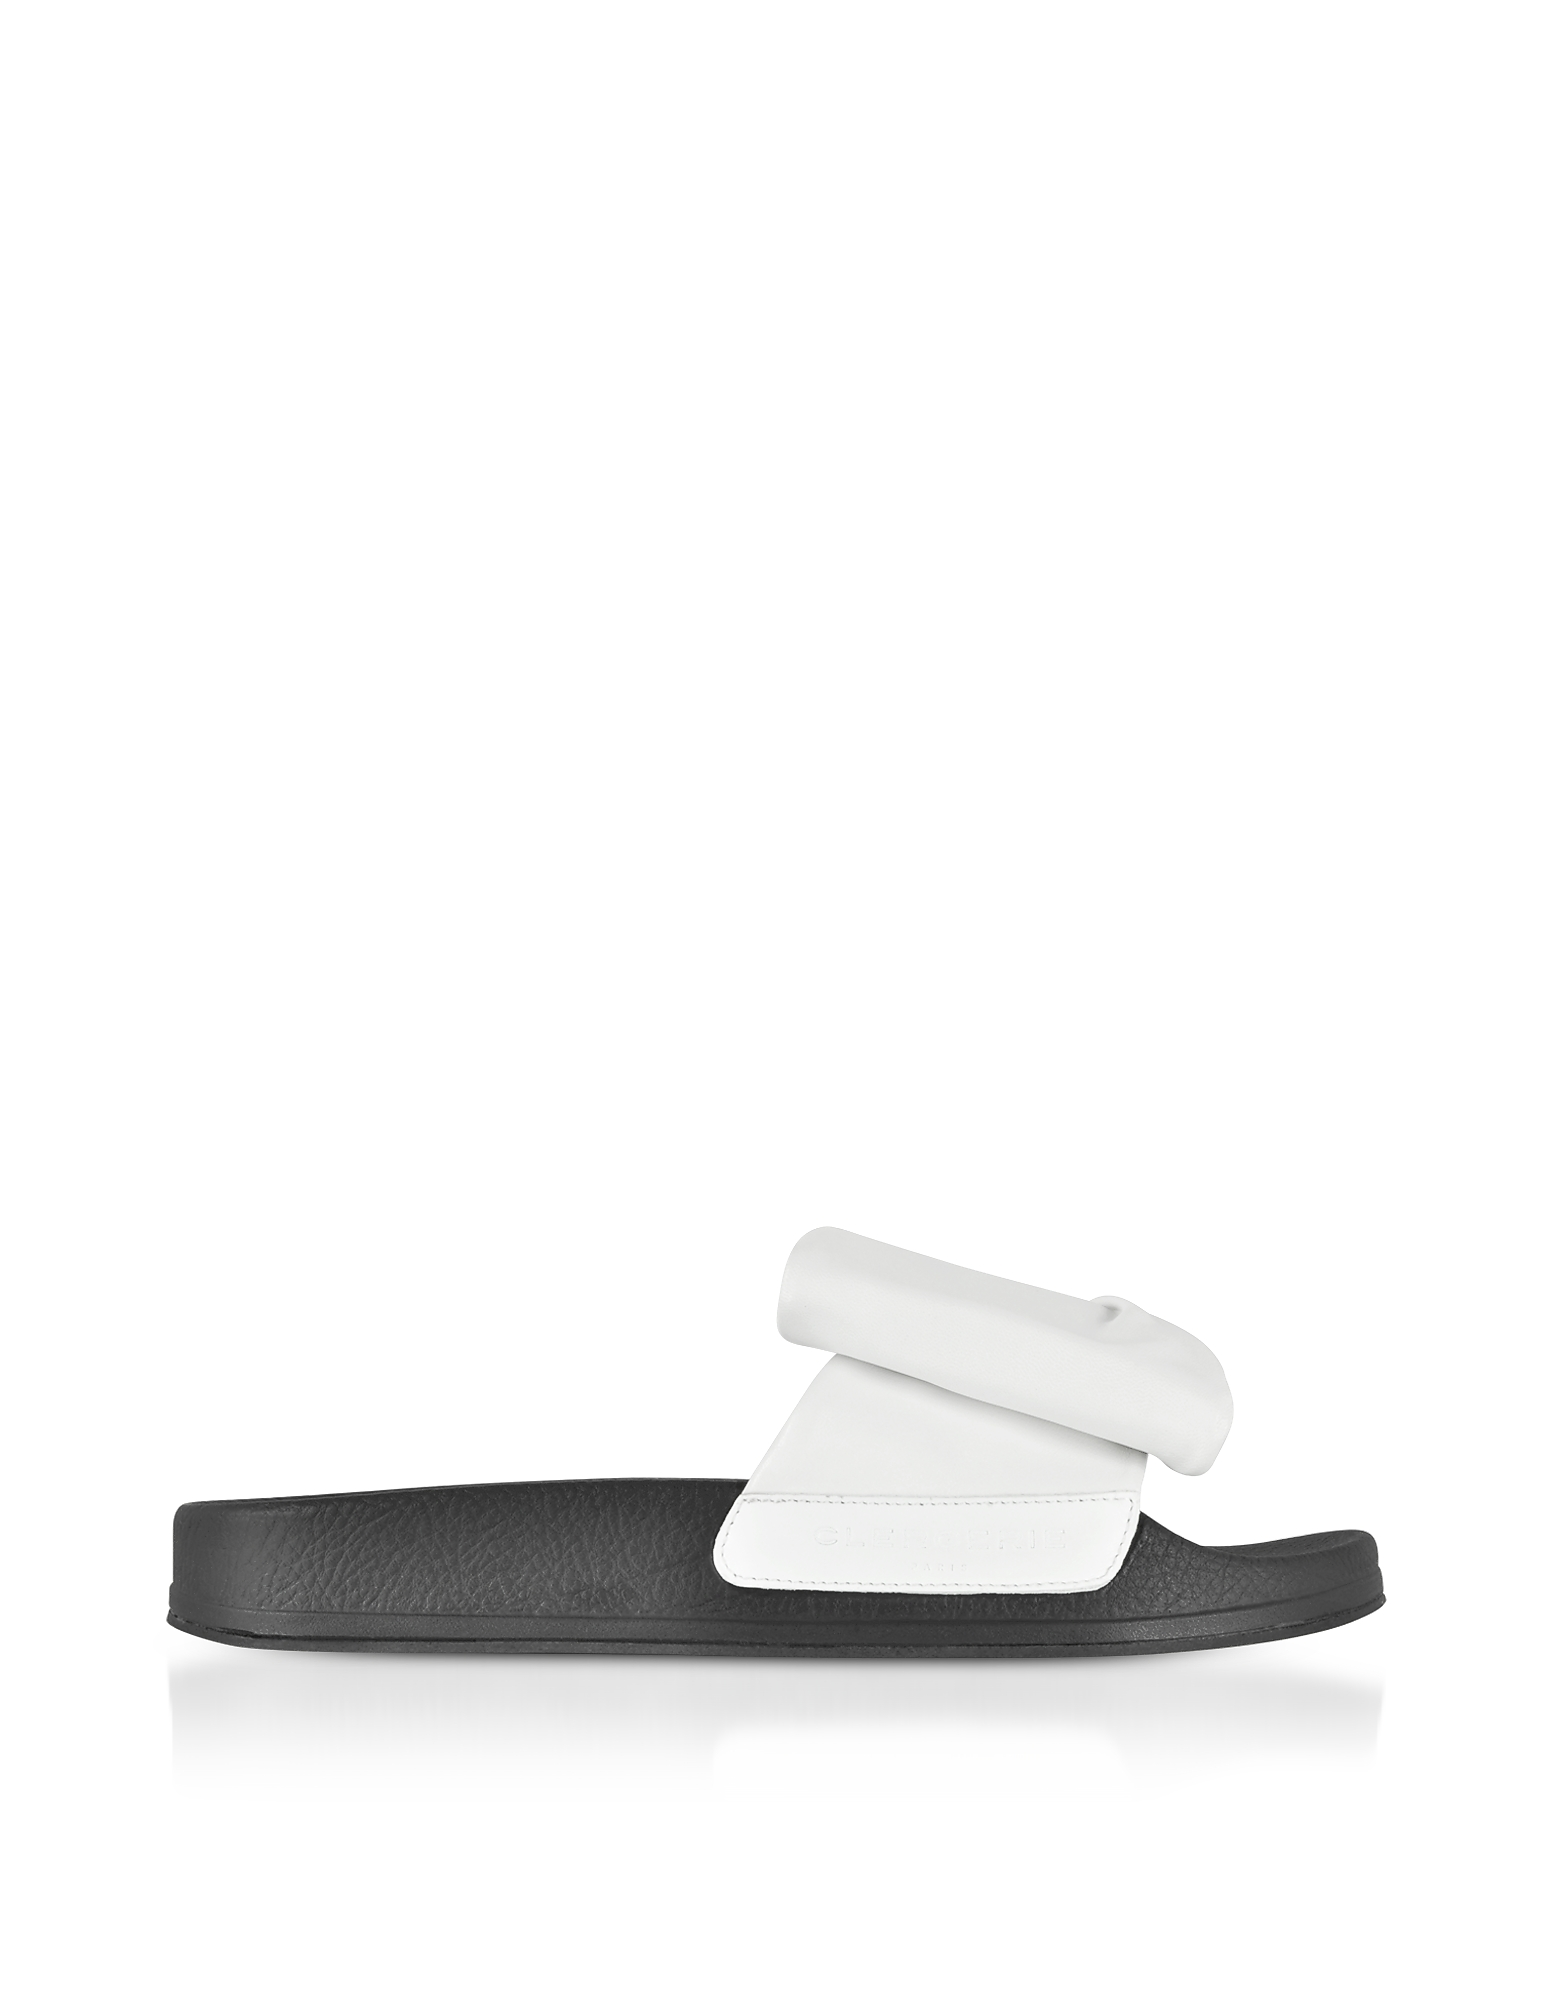 Robert Clergerie Shoes, Wendy White Leather Slide Sandals w/Black Sole